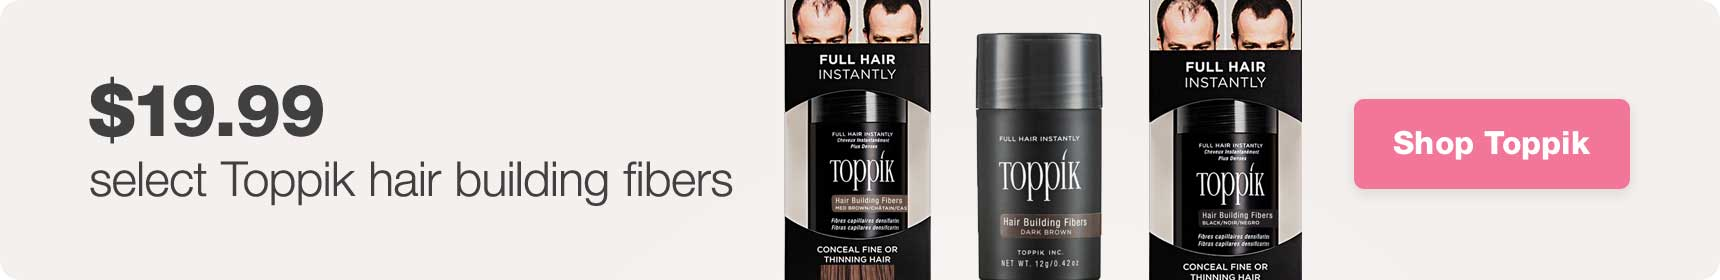 $19.99 select Toppik hair building fibers. Shop Toppik.